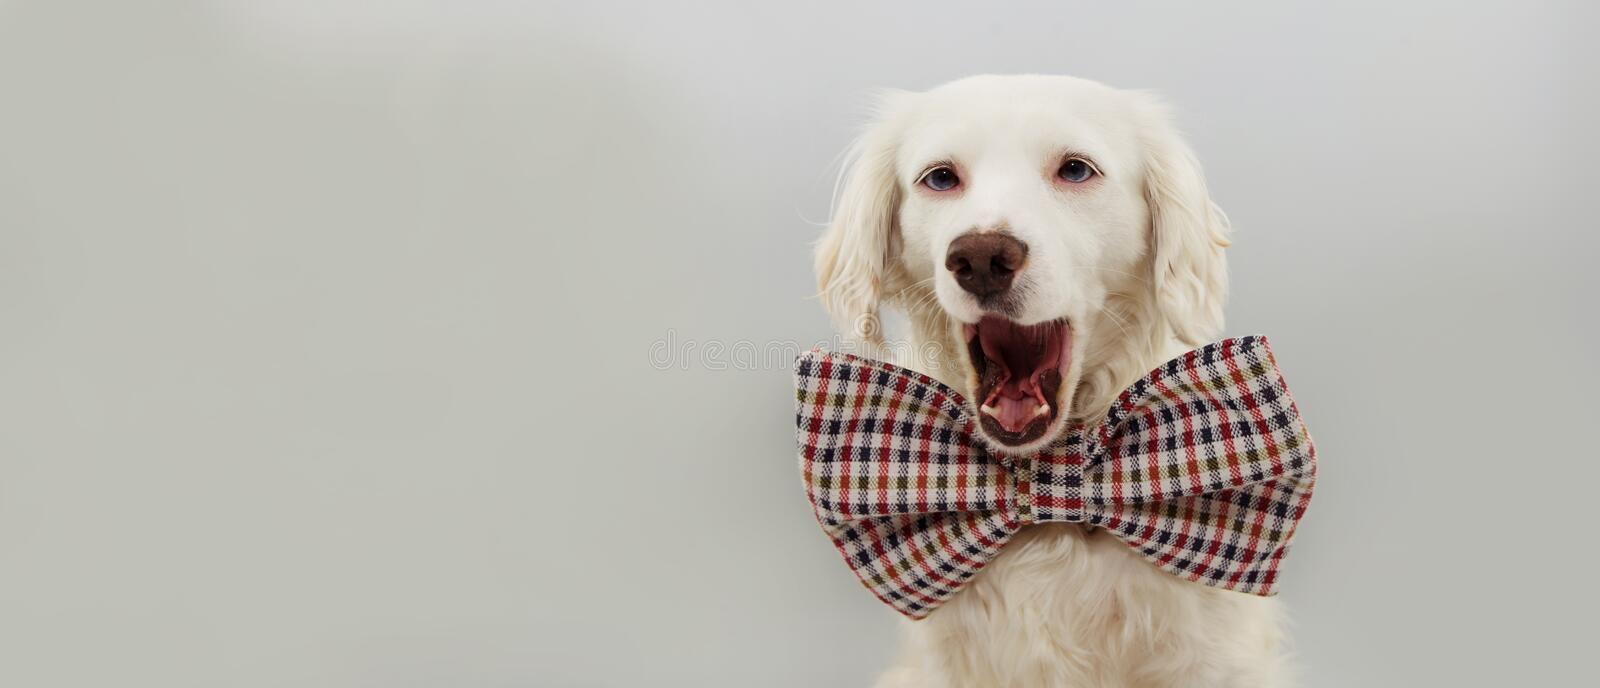 BANNER HAPPY DOG CELEBRATING A BIRTHDAY, NEW YEAR OR  CARNIVAL PARTY. WEARING A VINTAGE BOW TIE. ISOLATED AGAINST GRAY COLORED stock image